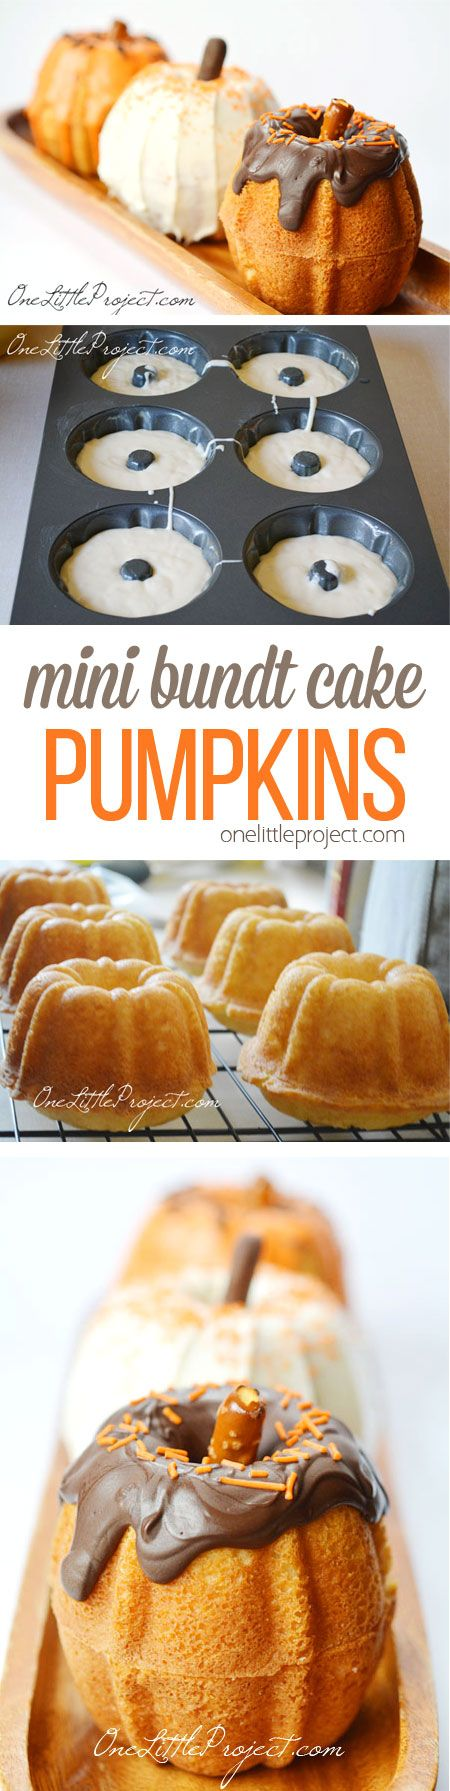 These mini bundt cake pumpkins are ADORABLE! And they're really easy to make…